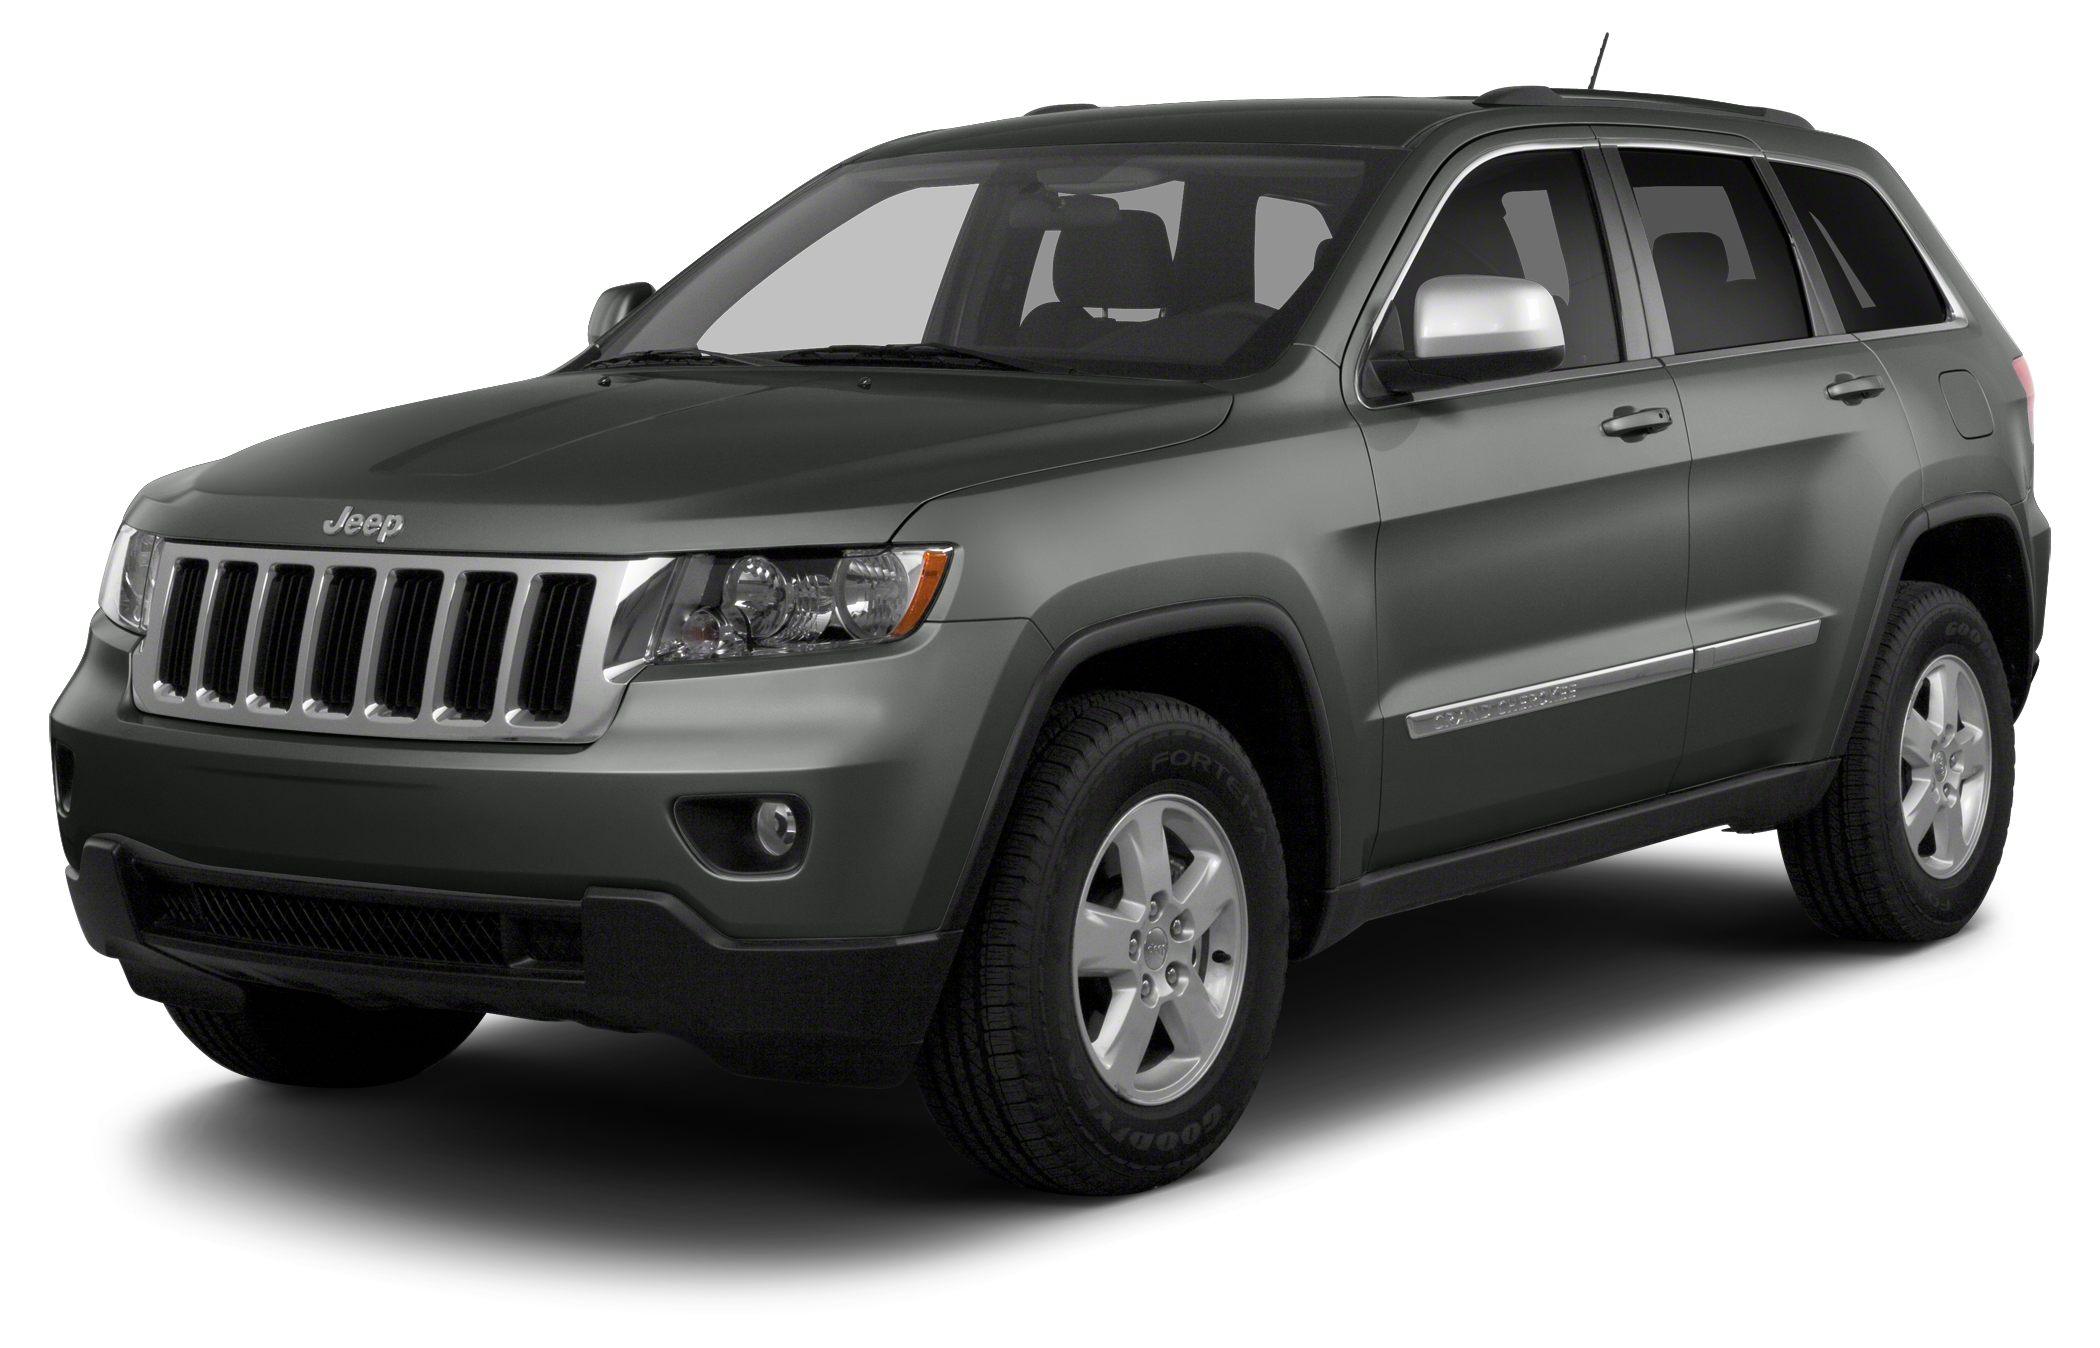 details 2013 jeep grand cherokee for sale. Cars Review. Best American Auto & Cars Review